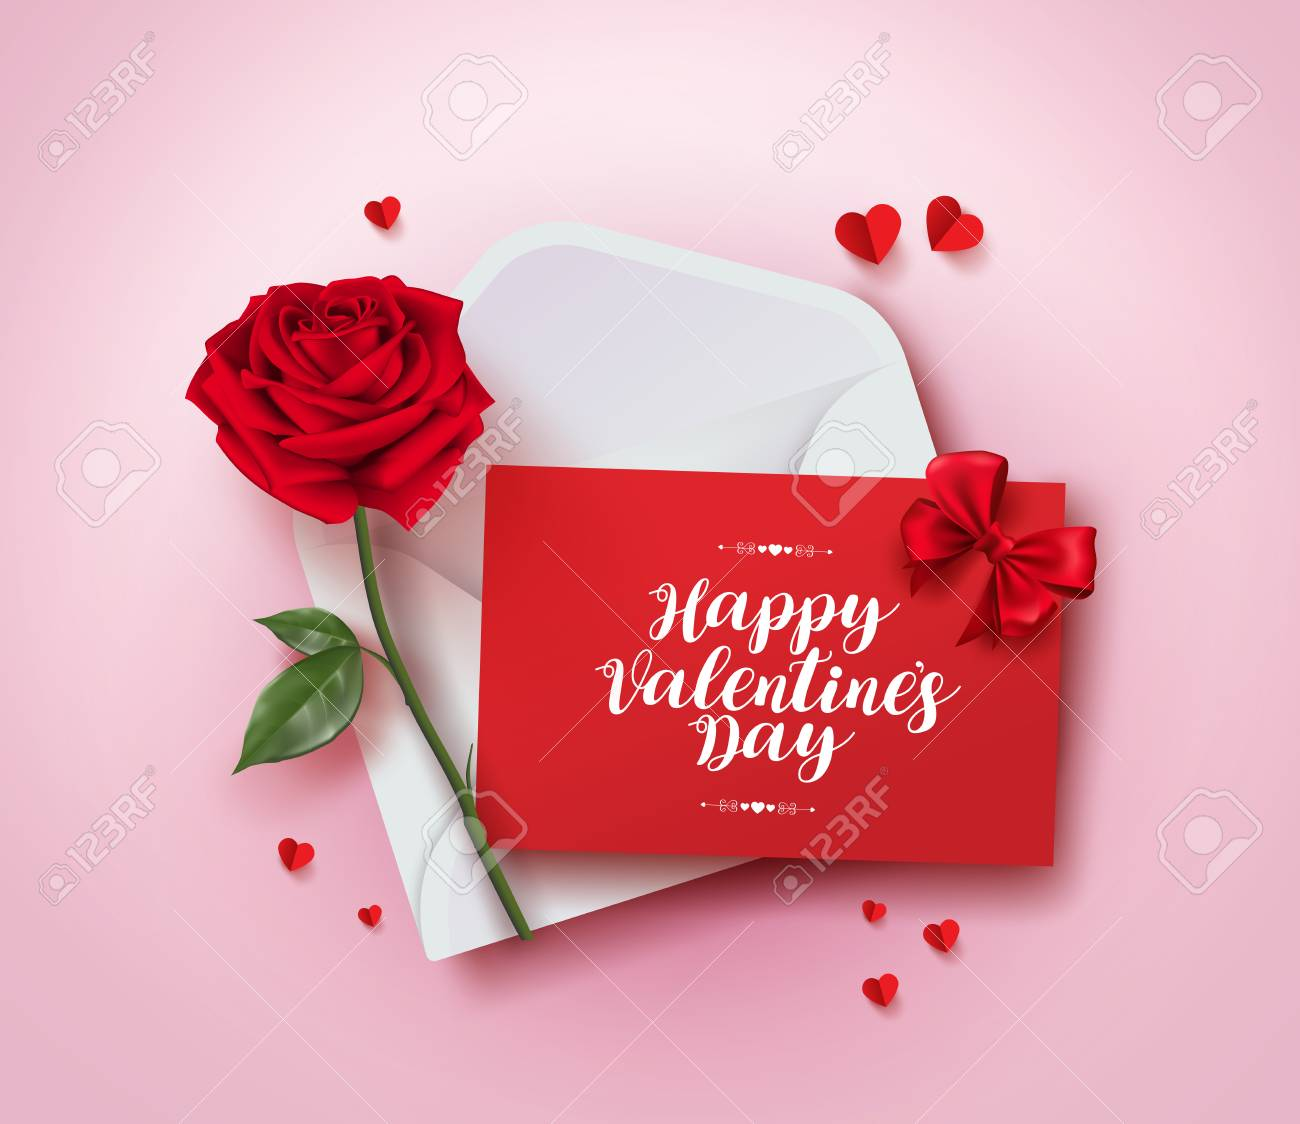 Happy valentines day greeting card royalty free cliparts vectors happy valentines day greeting card stock vector 93394256 m4hsunfo